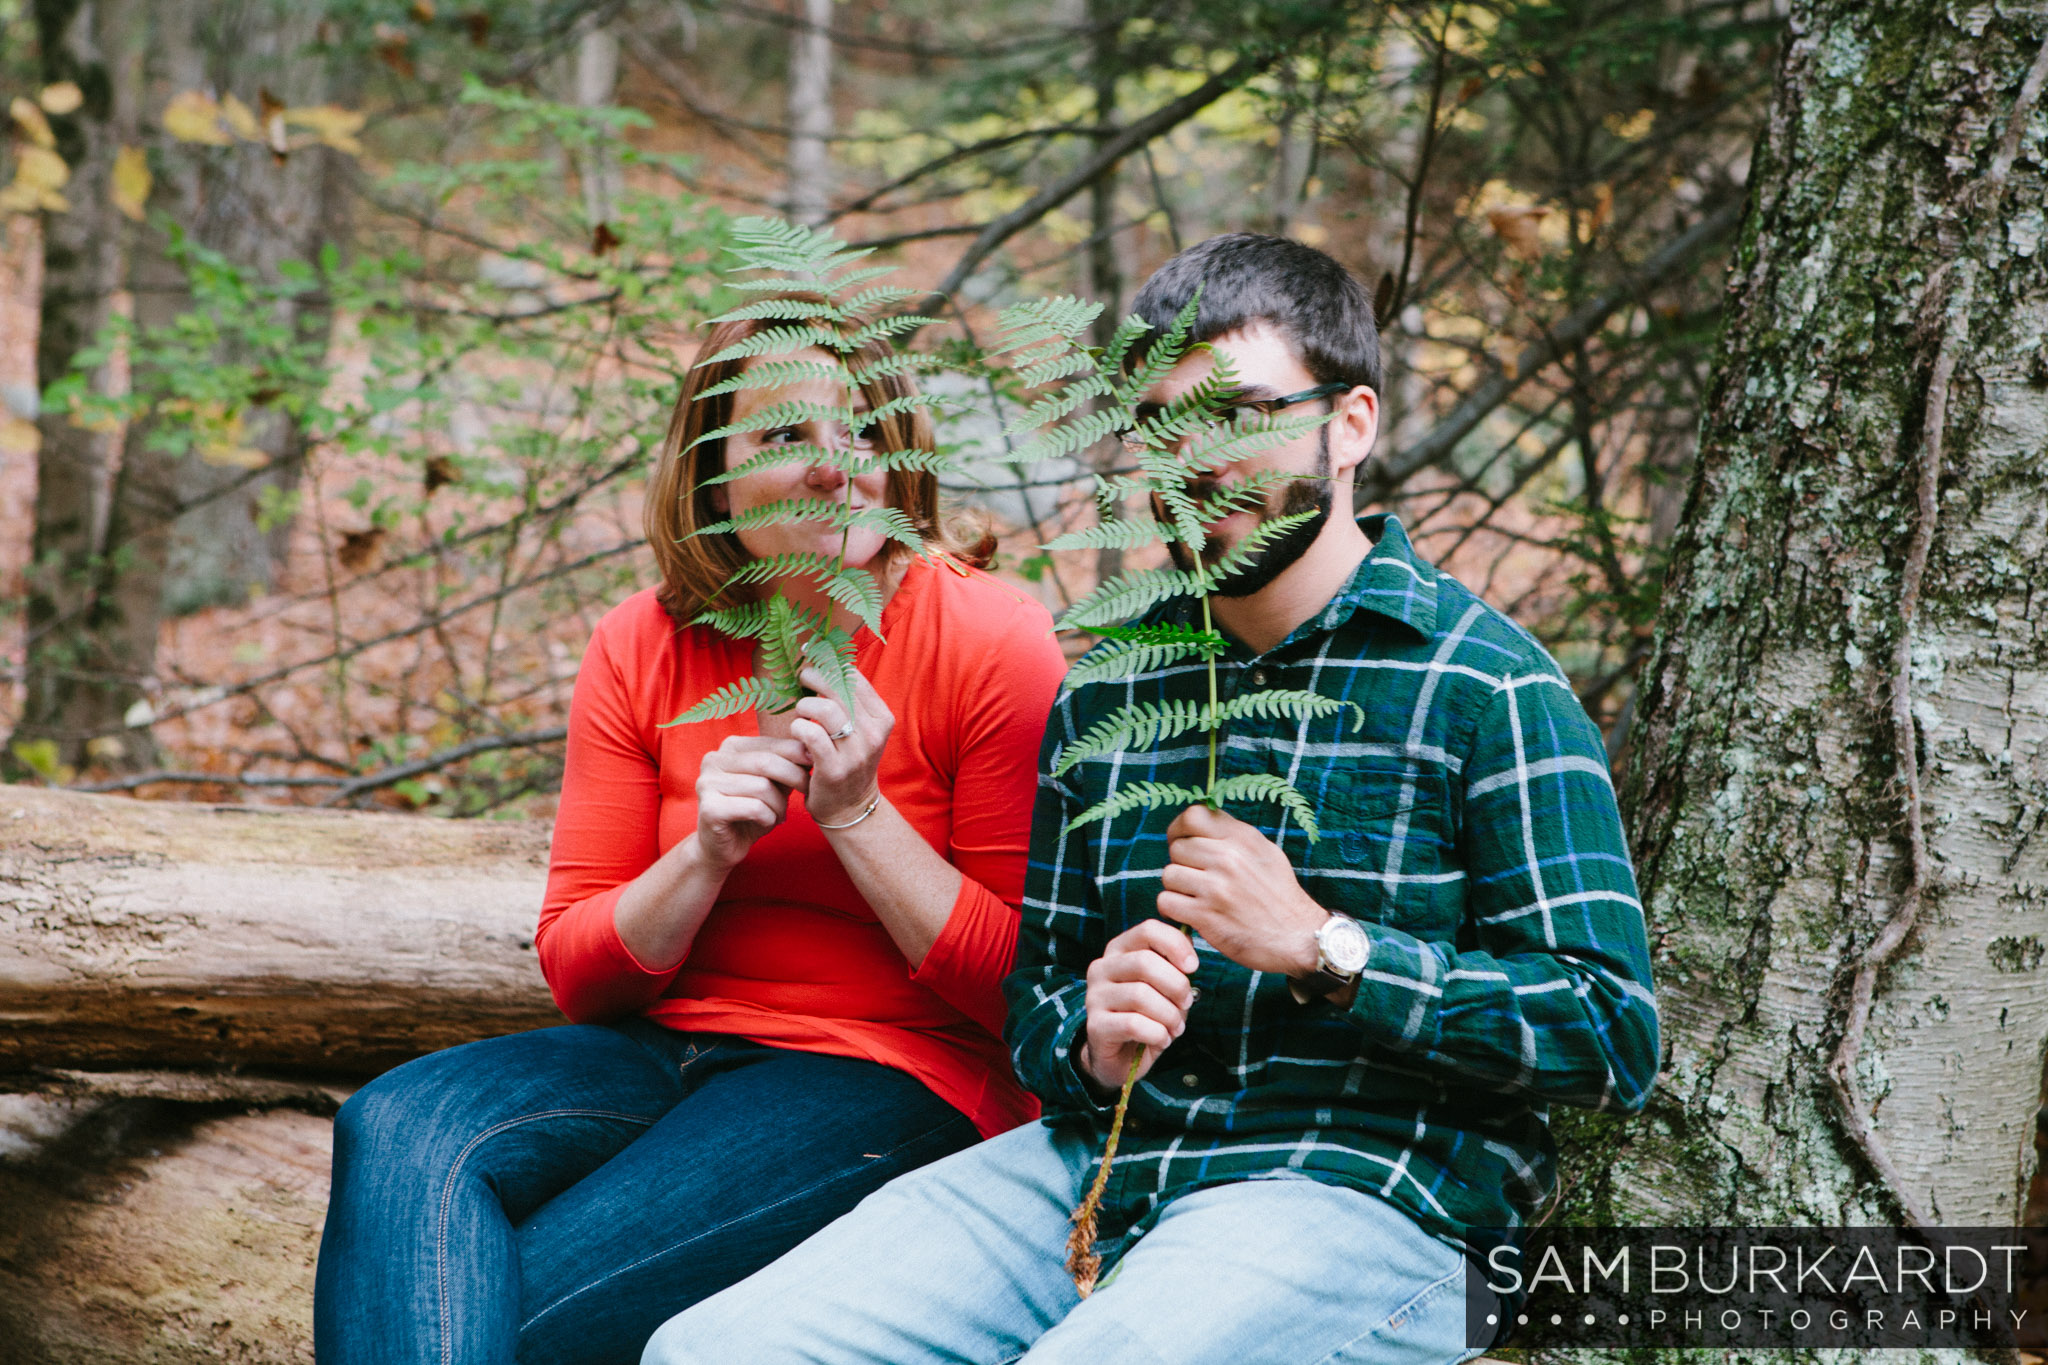 samburkardt-fall-engagement-connecticut-foliage-southford-falls-state-park_0017.jpg